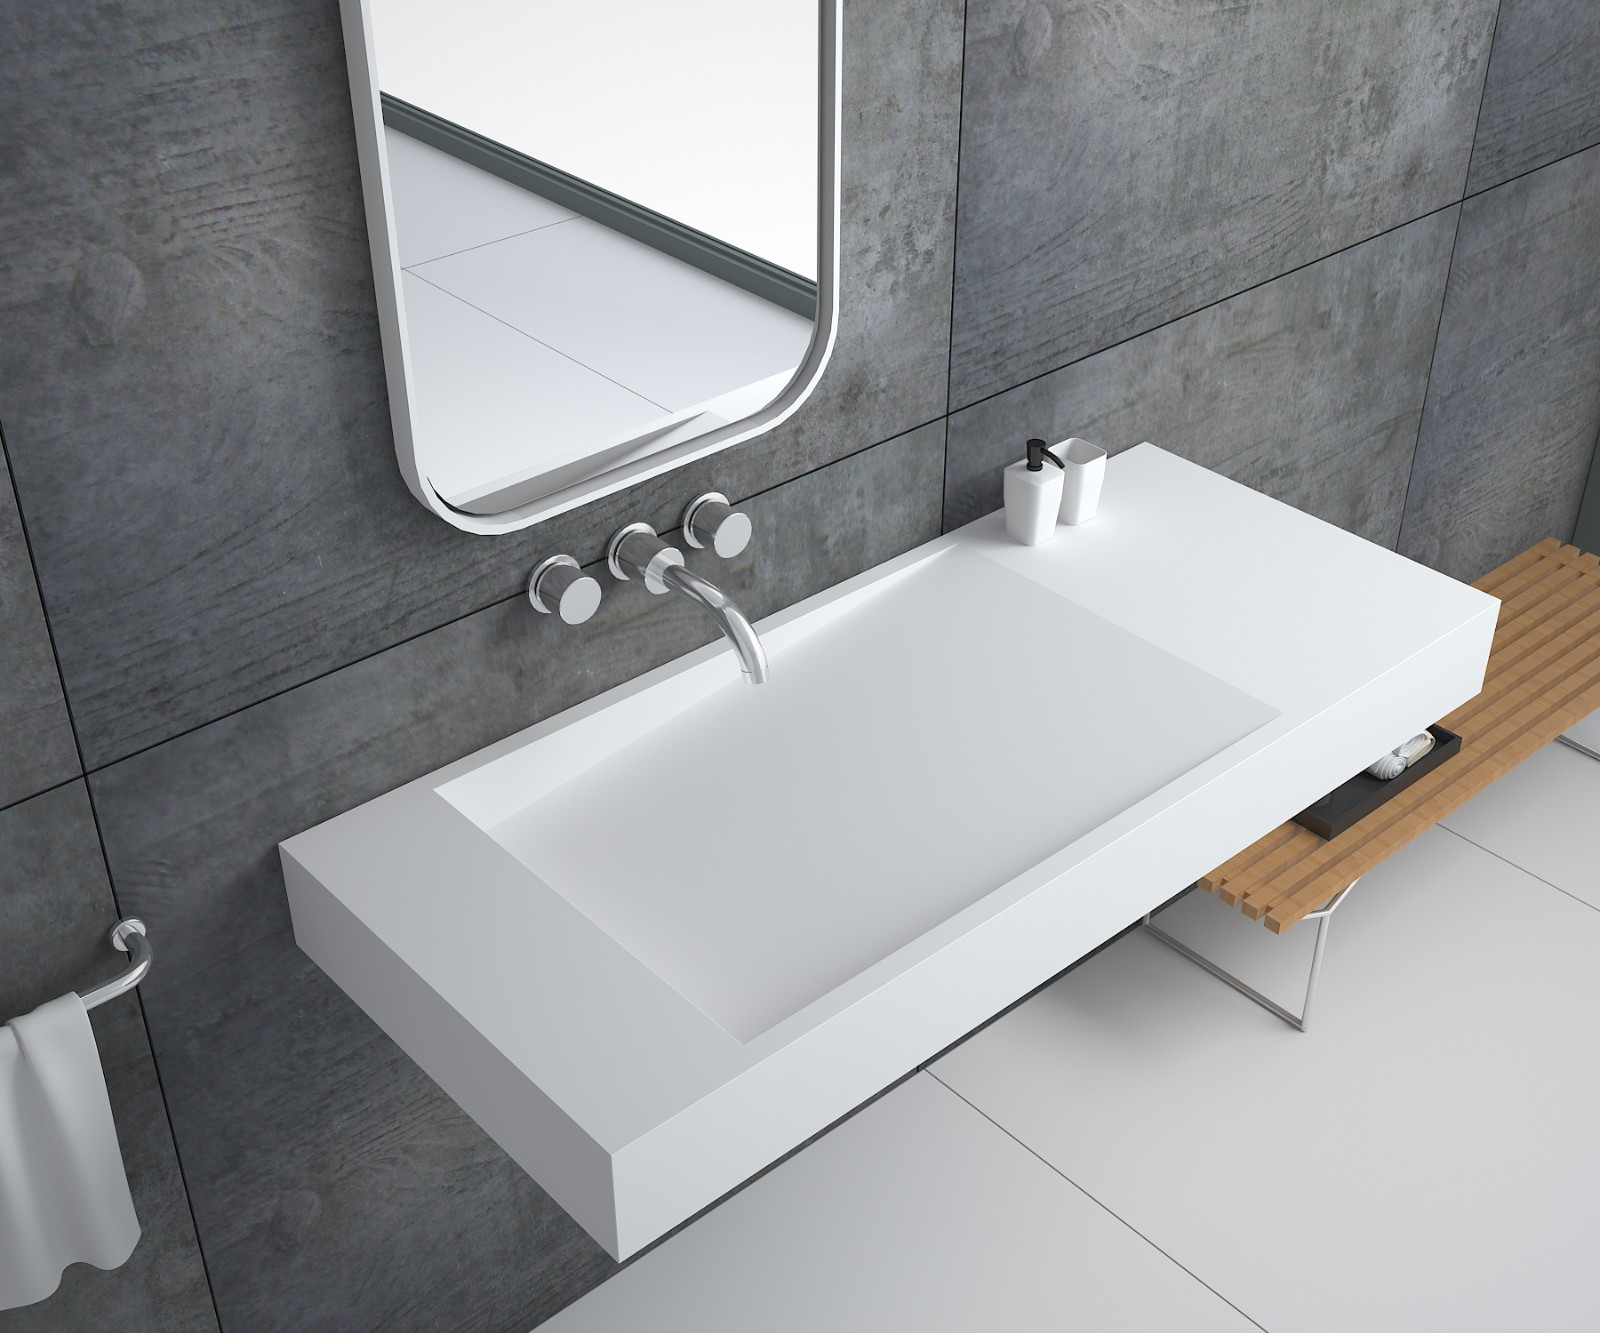 Bellissimo-Solid Surface Resin Stone Wall Mounted Basin Bs-8407 | Solid Surface Wall